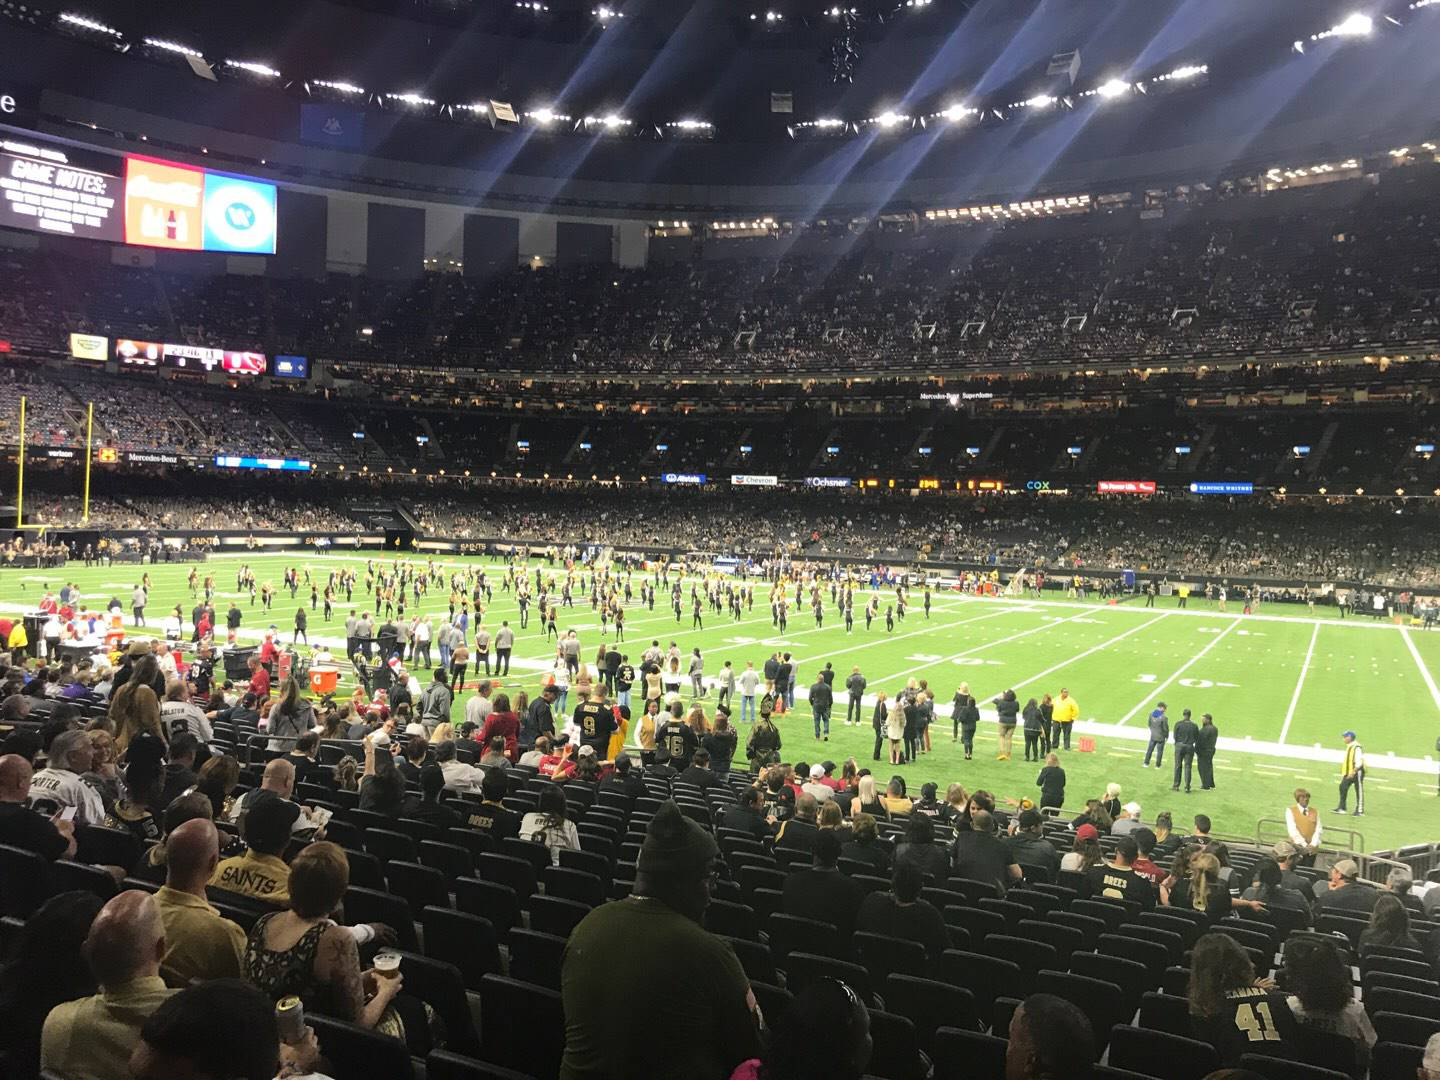 Mercedes-Benz Superdome Section 111 Row 23 Seat 4